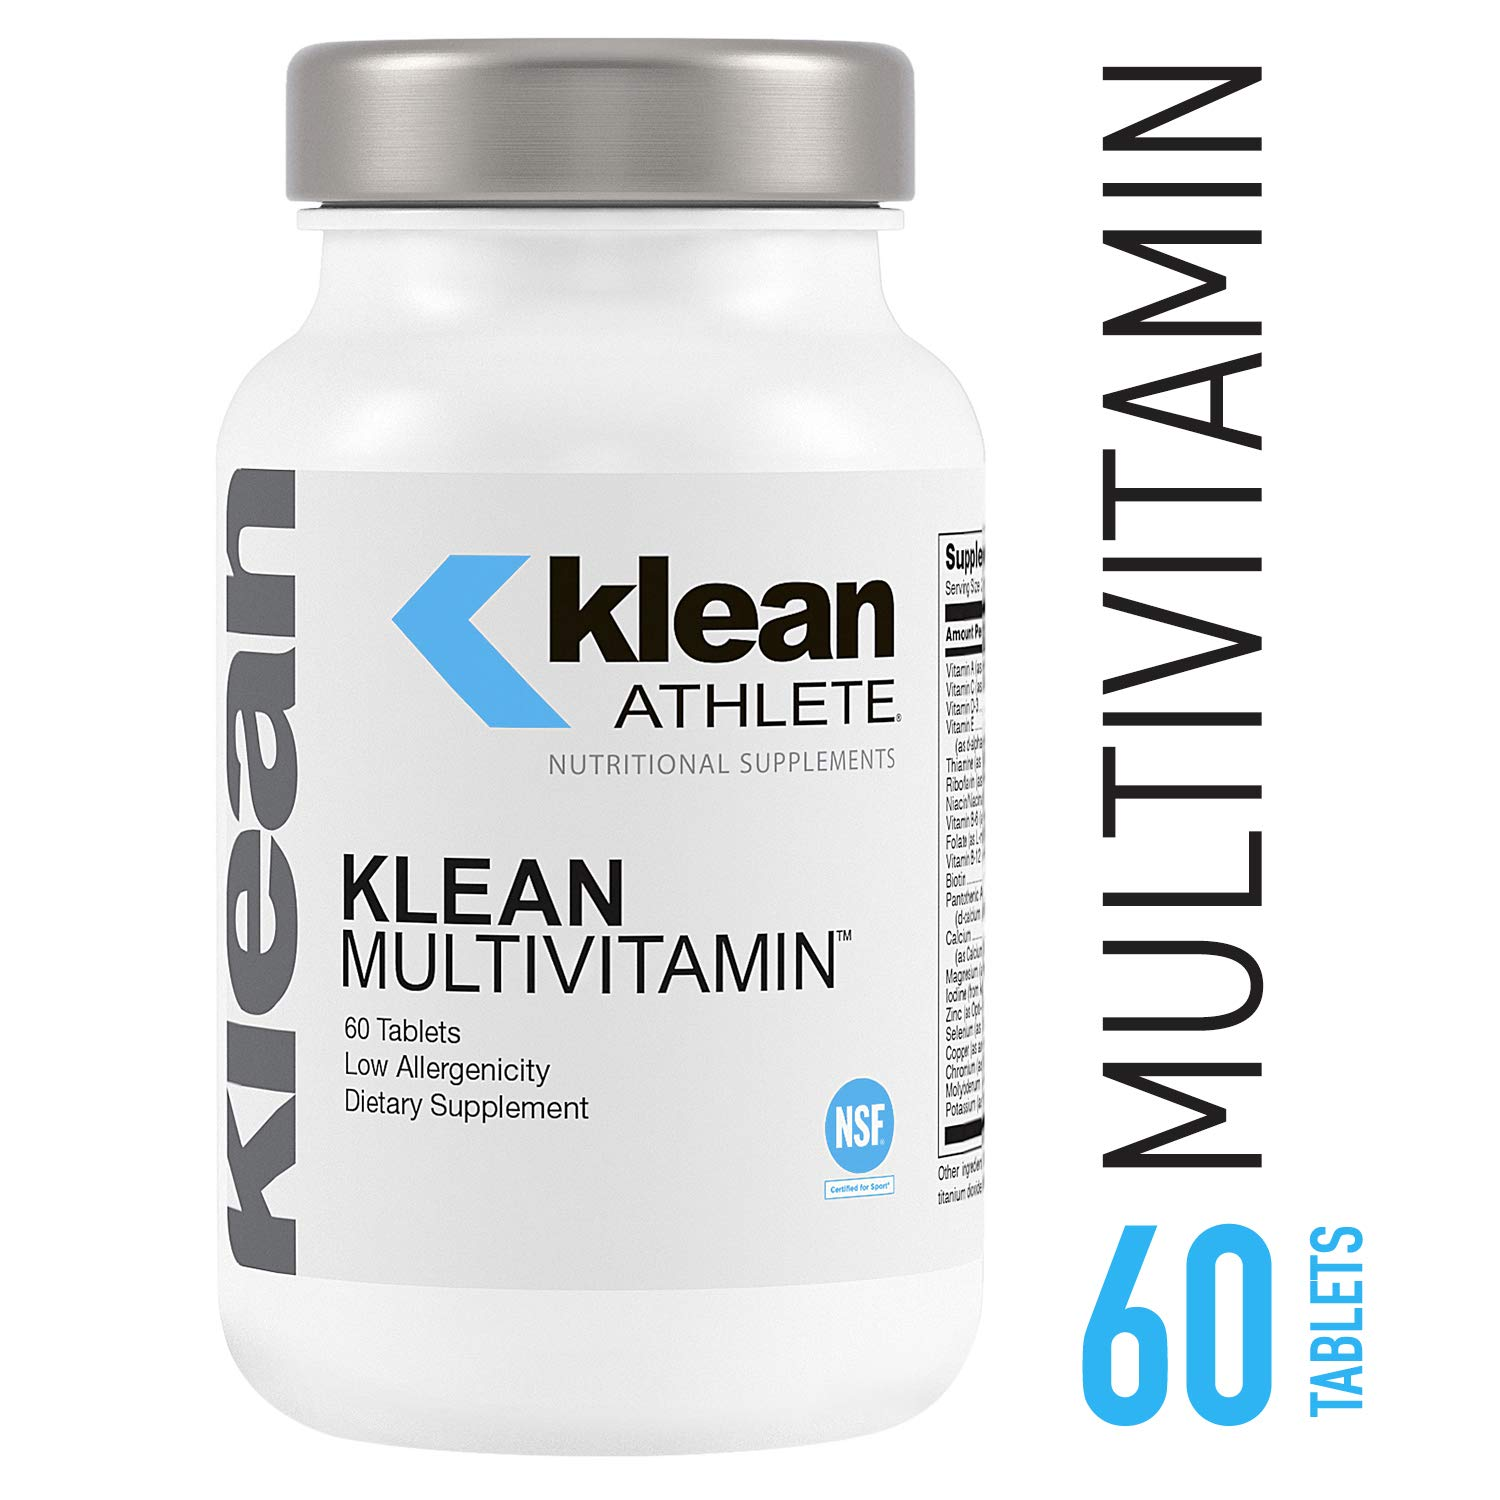 Klean Athlete - Klean Multivitamin - Essential Nutrients and Antioxidants for Optimal Health and Performance* - NSF Certified for Sport - 60 Tablets by Klean Athlete